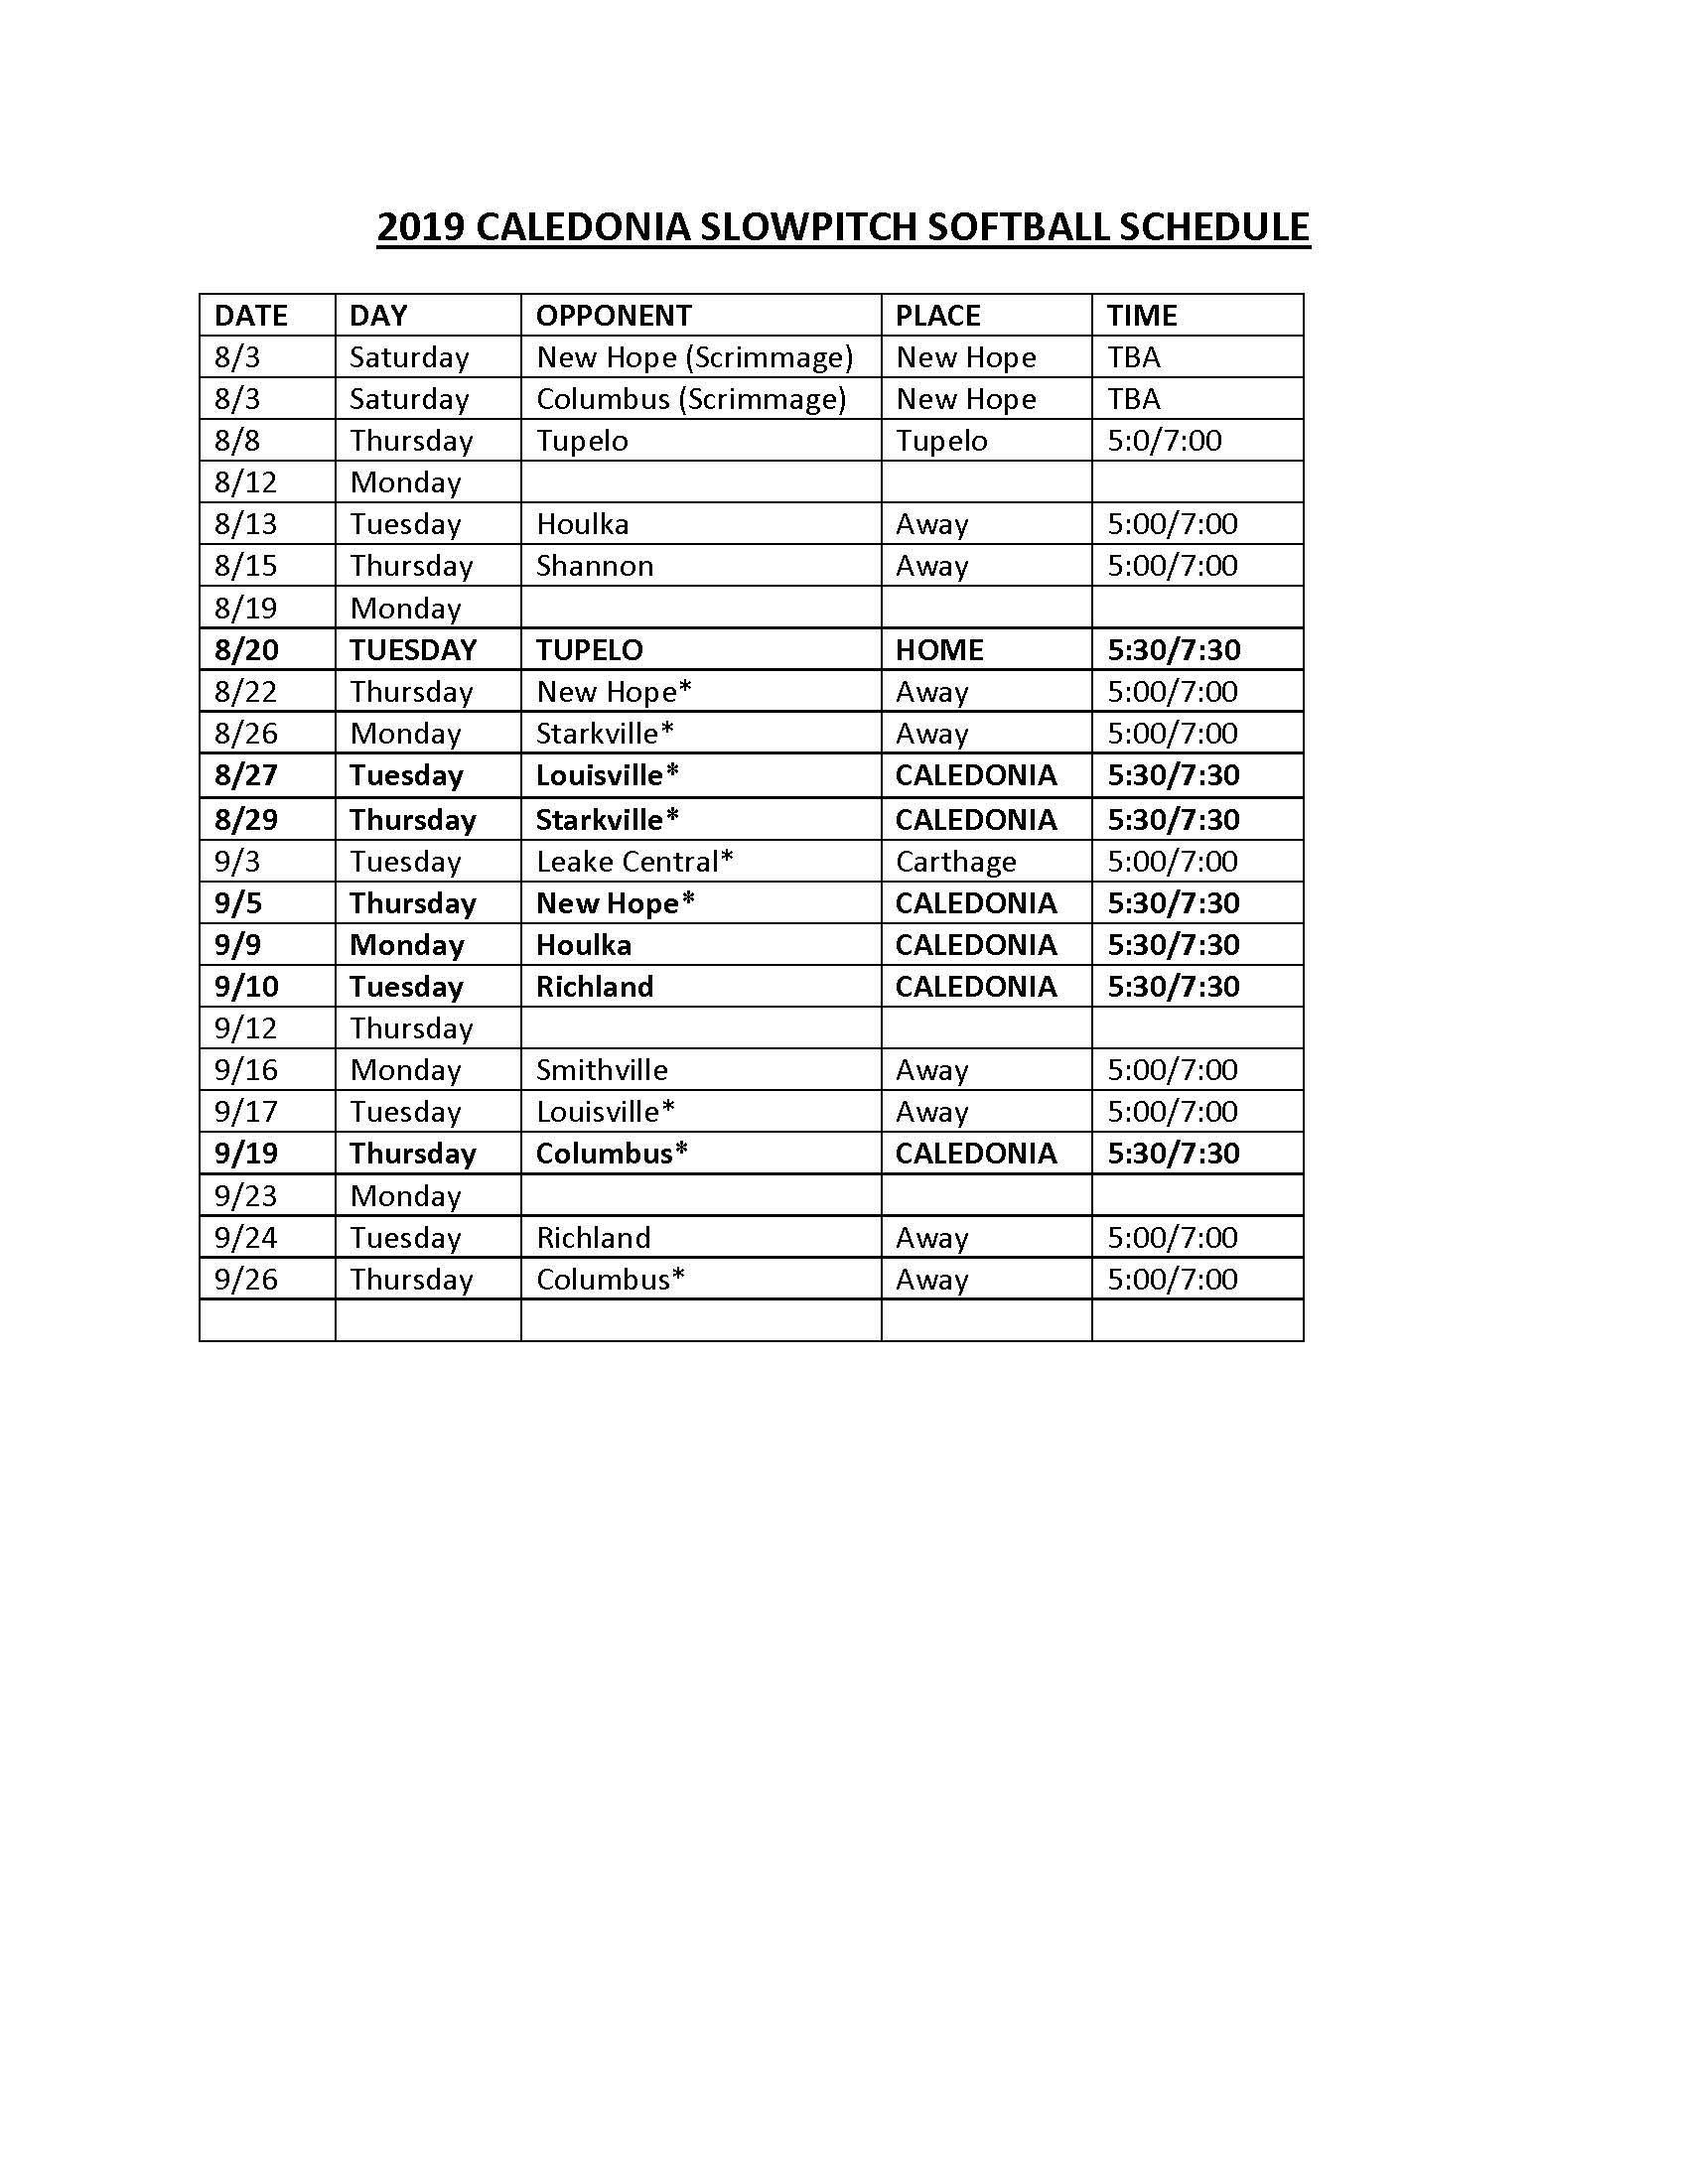 slow pitch softball schedule